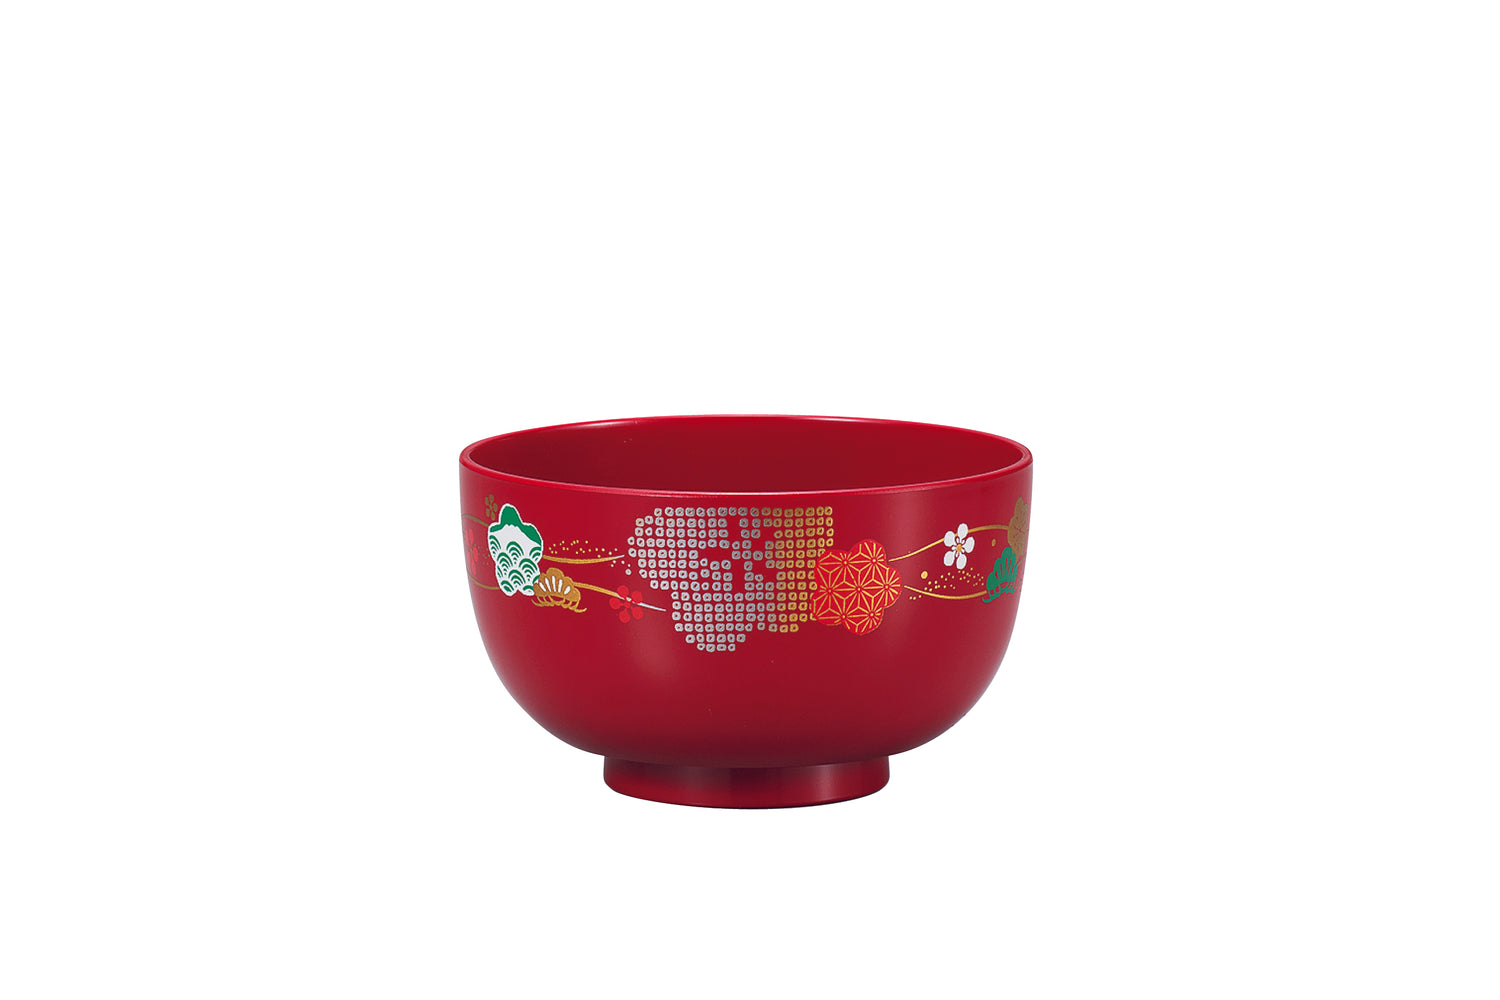 Motenashi Wafu Bowl | Red by Hakoya - Bento&co Japanese Bento Lunch Boxes and Kitchenware Specialists